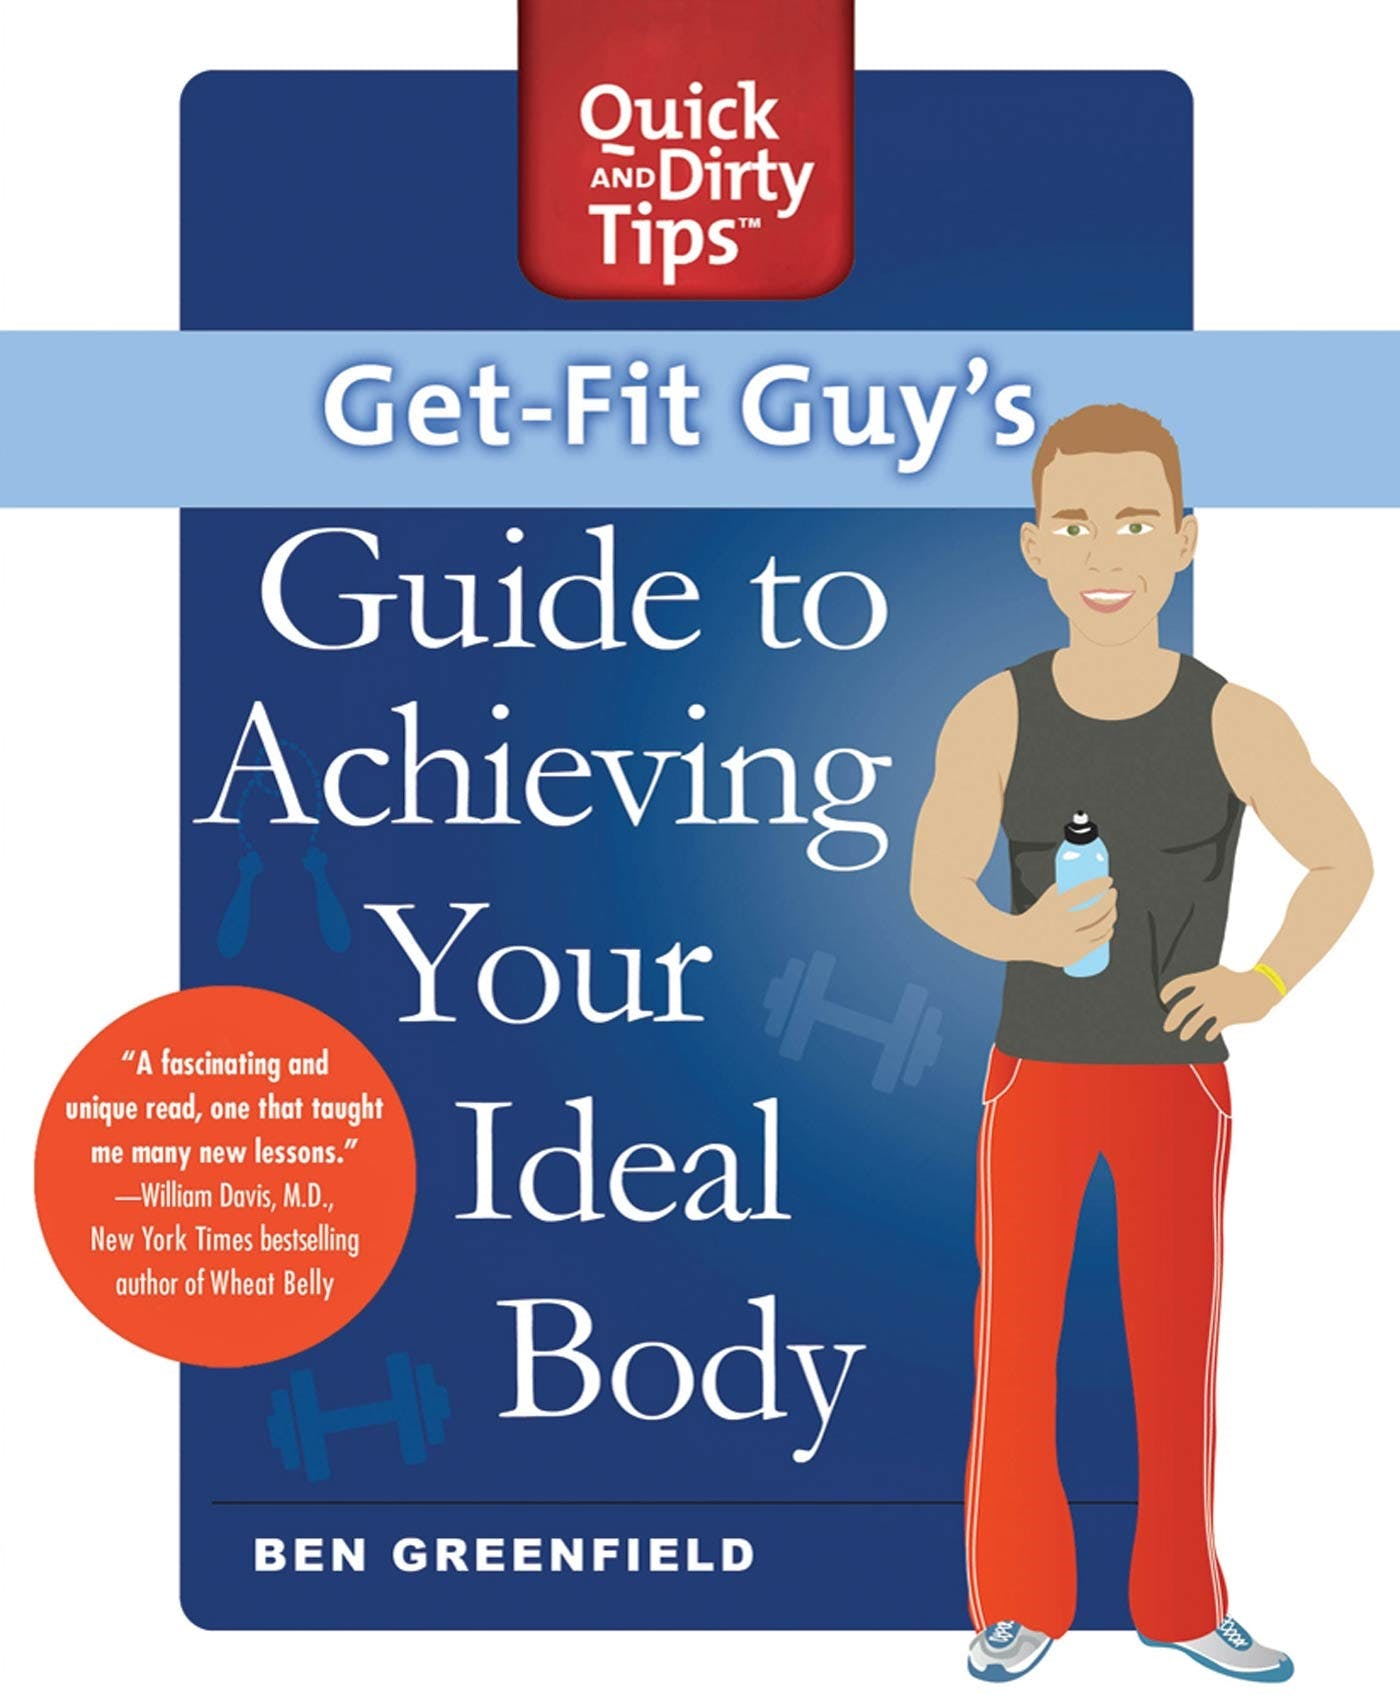 Image of Get-Fit Guy's Guide to Achieving Your Ideal Body